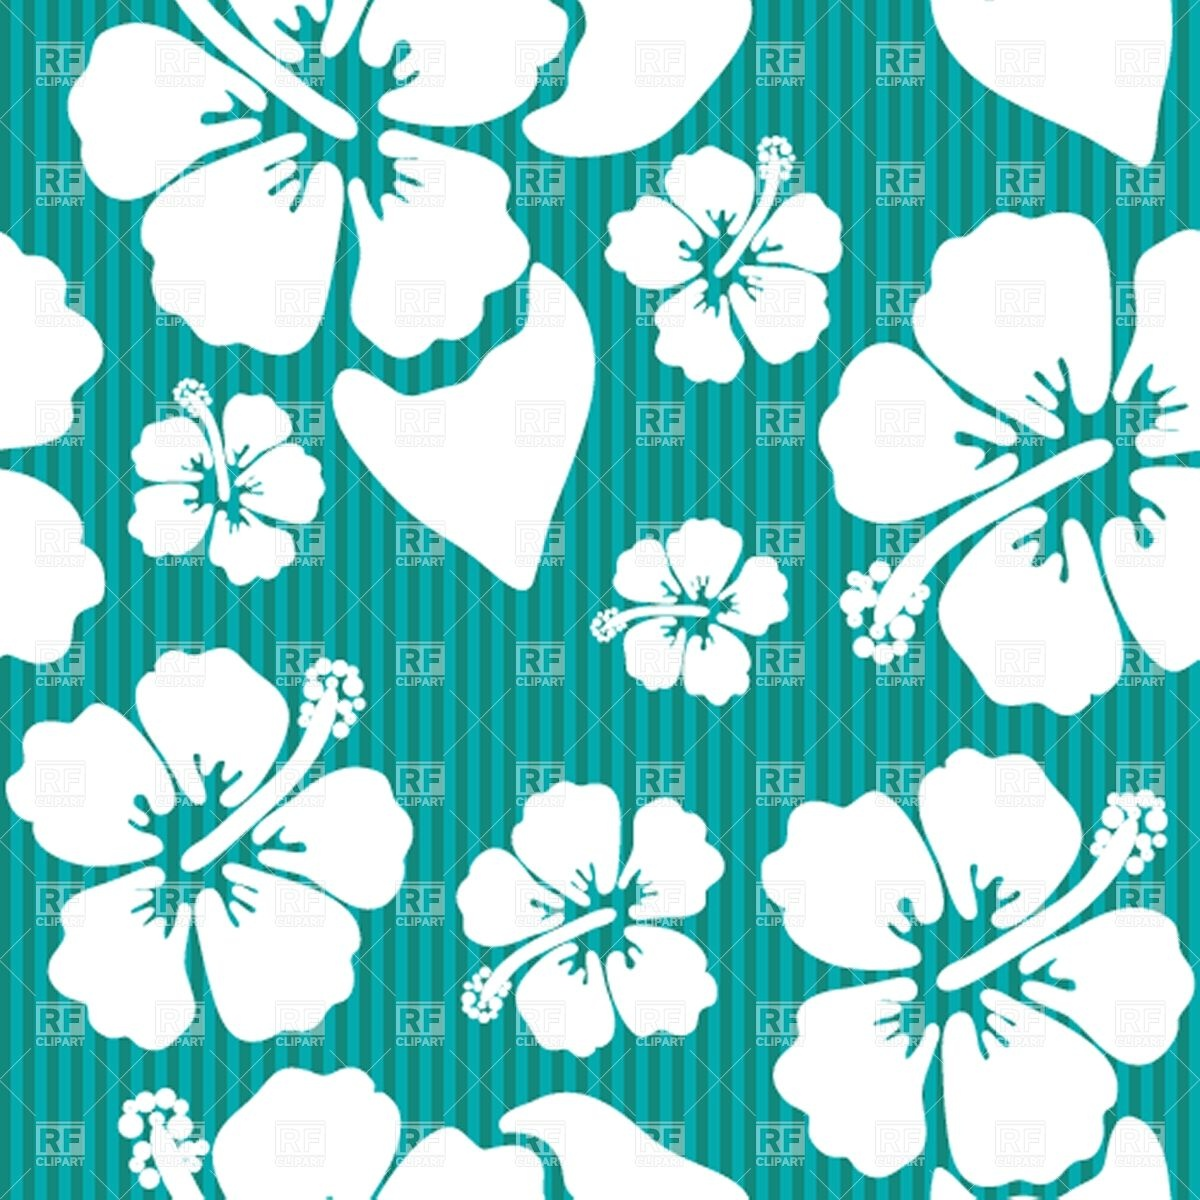 6 Hawaiian Vector Flower Patterns Images